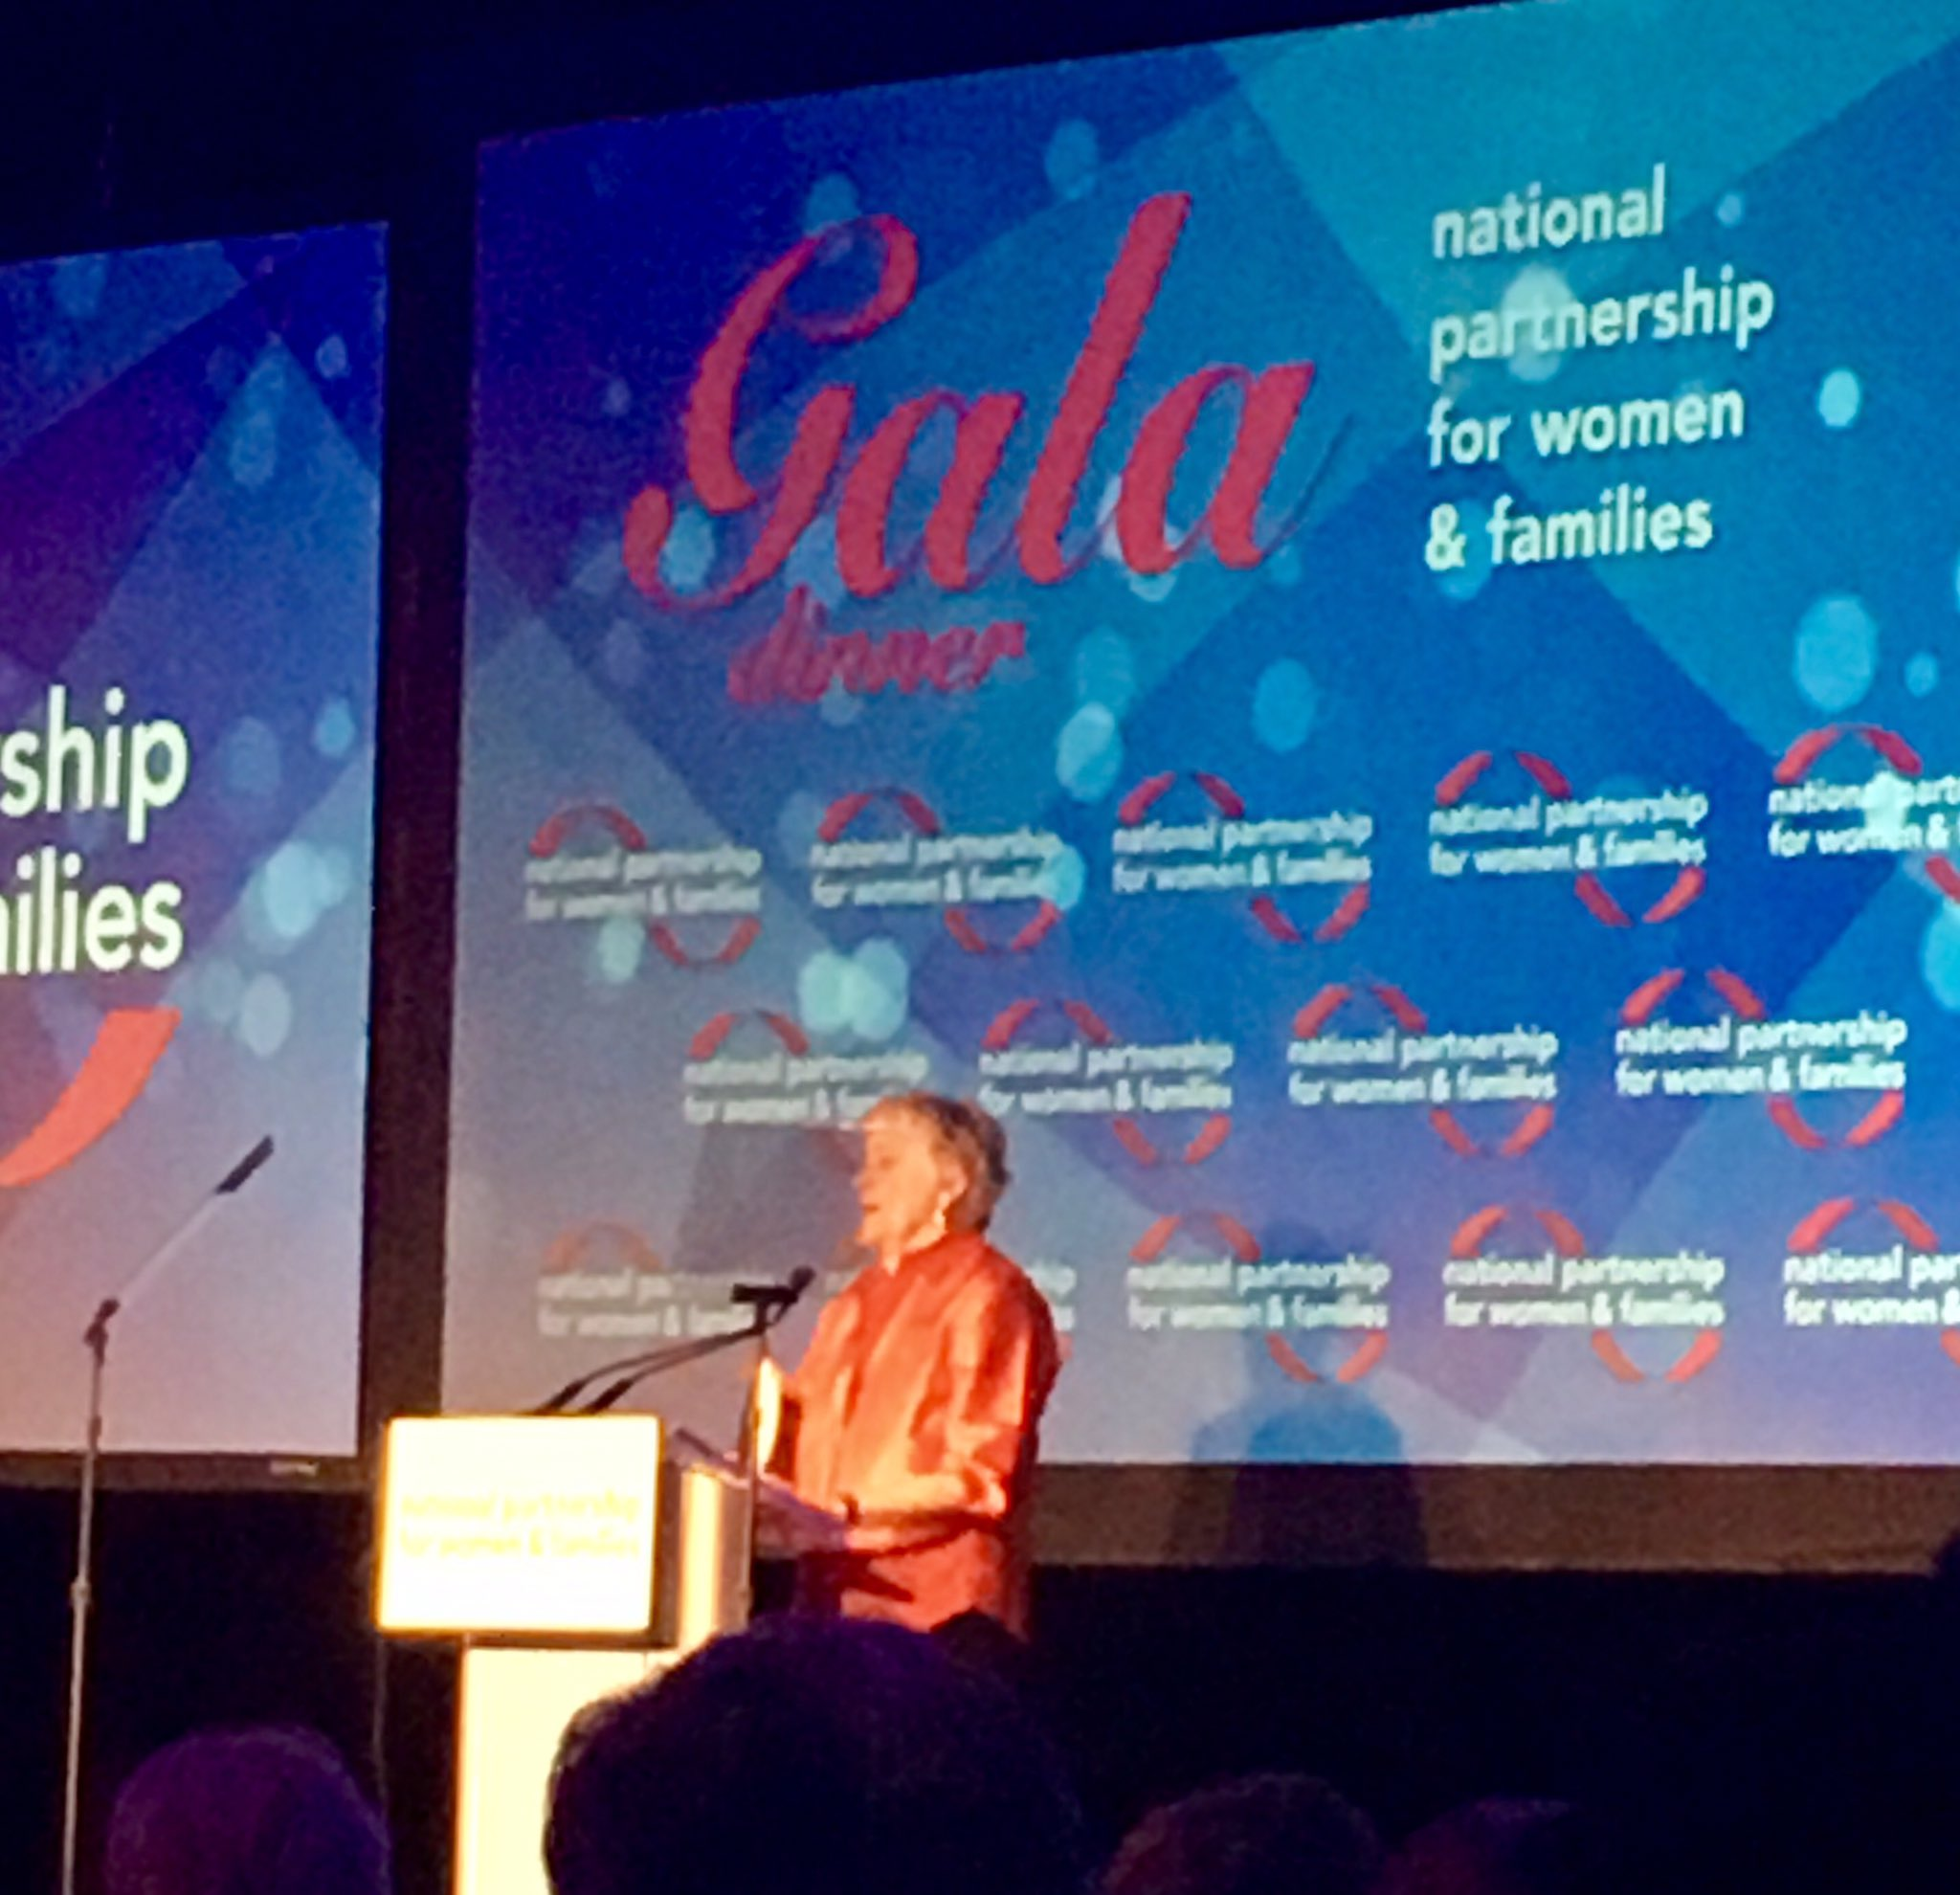 """When the times are tough, we get to work!"" Excited to see @EllenRMalcolm from my days as an intern at @emilyslist #NPGala https://t.co/9P8XY3NGEG"